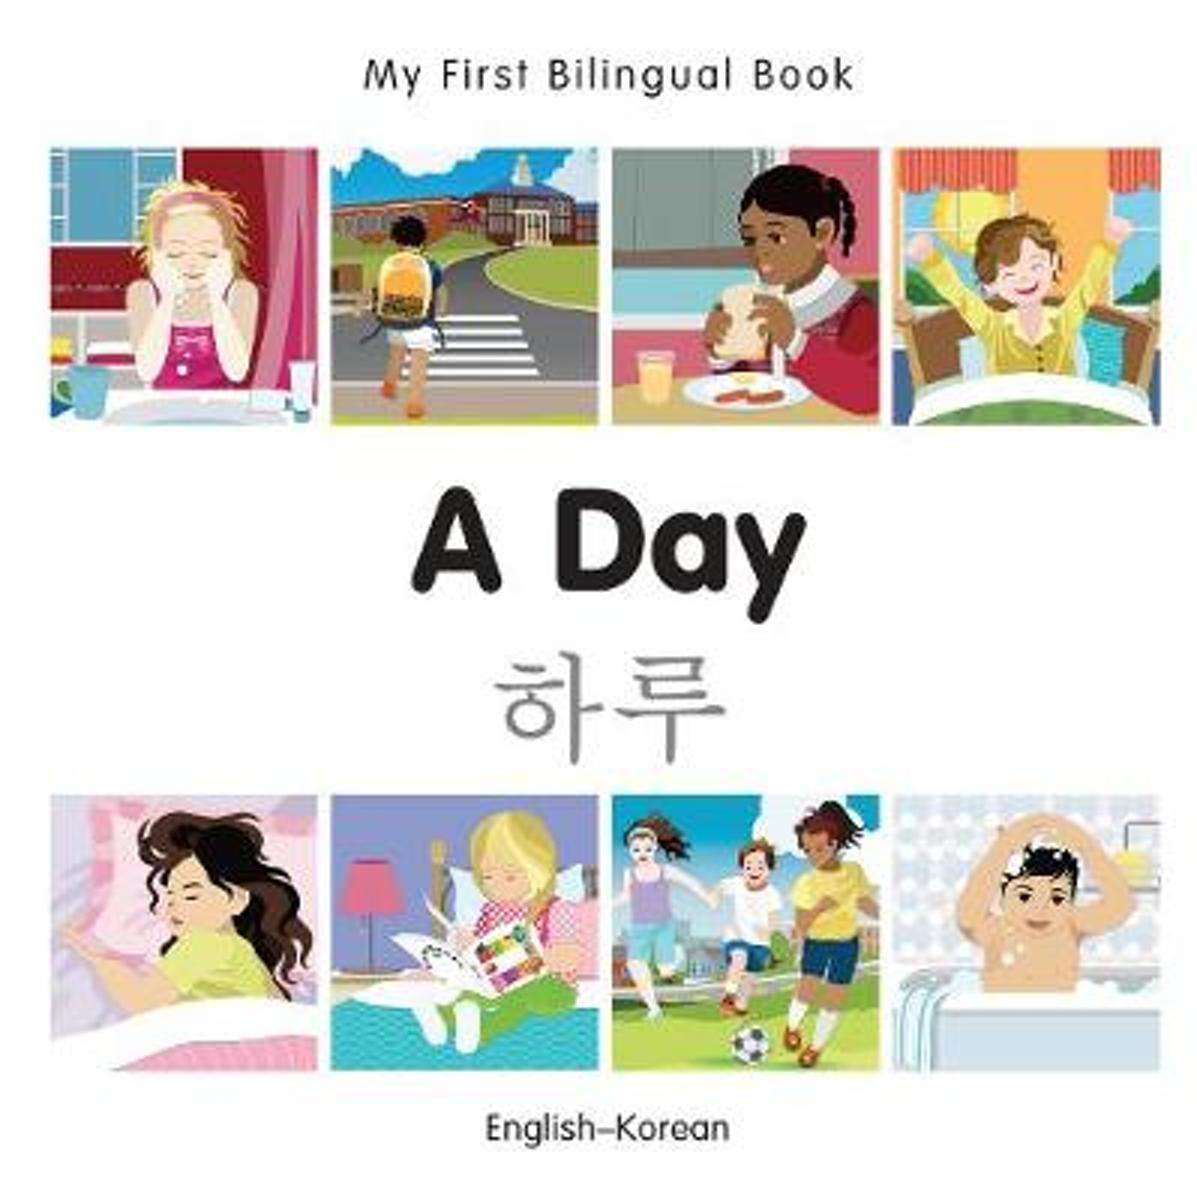 My First Bilingual Book - A Day - Korean-english